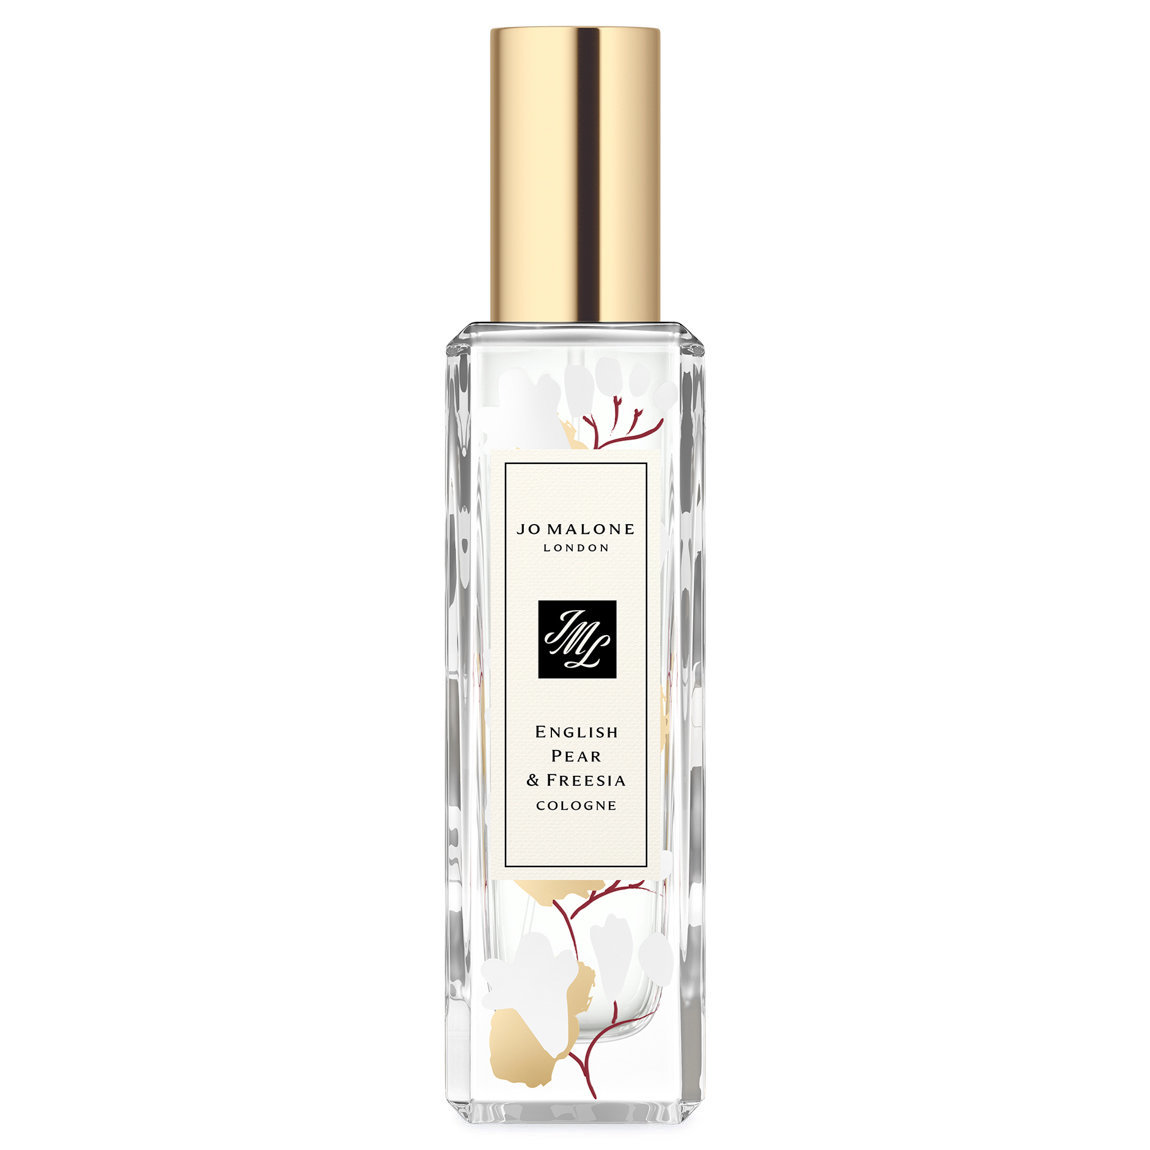 Jo Malone London Limited Edition English Pear & Freesia Decorated Cologne 30 ml alternative view 1 - product swatch.